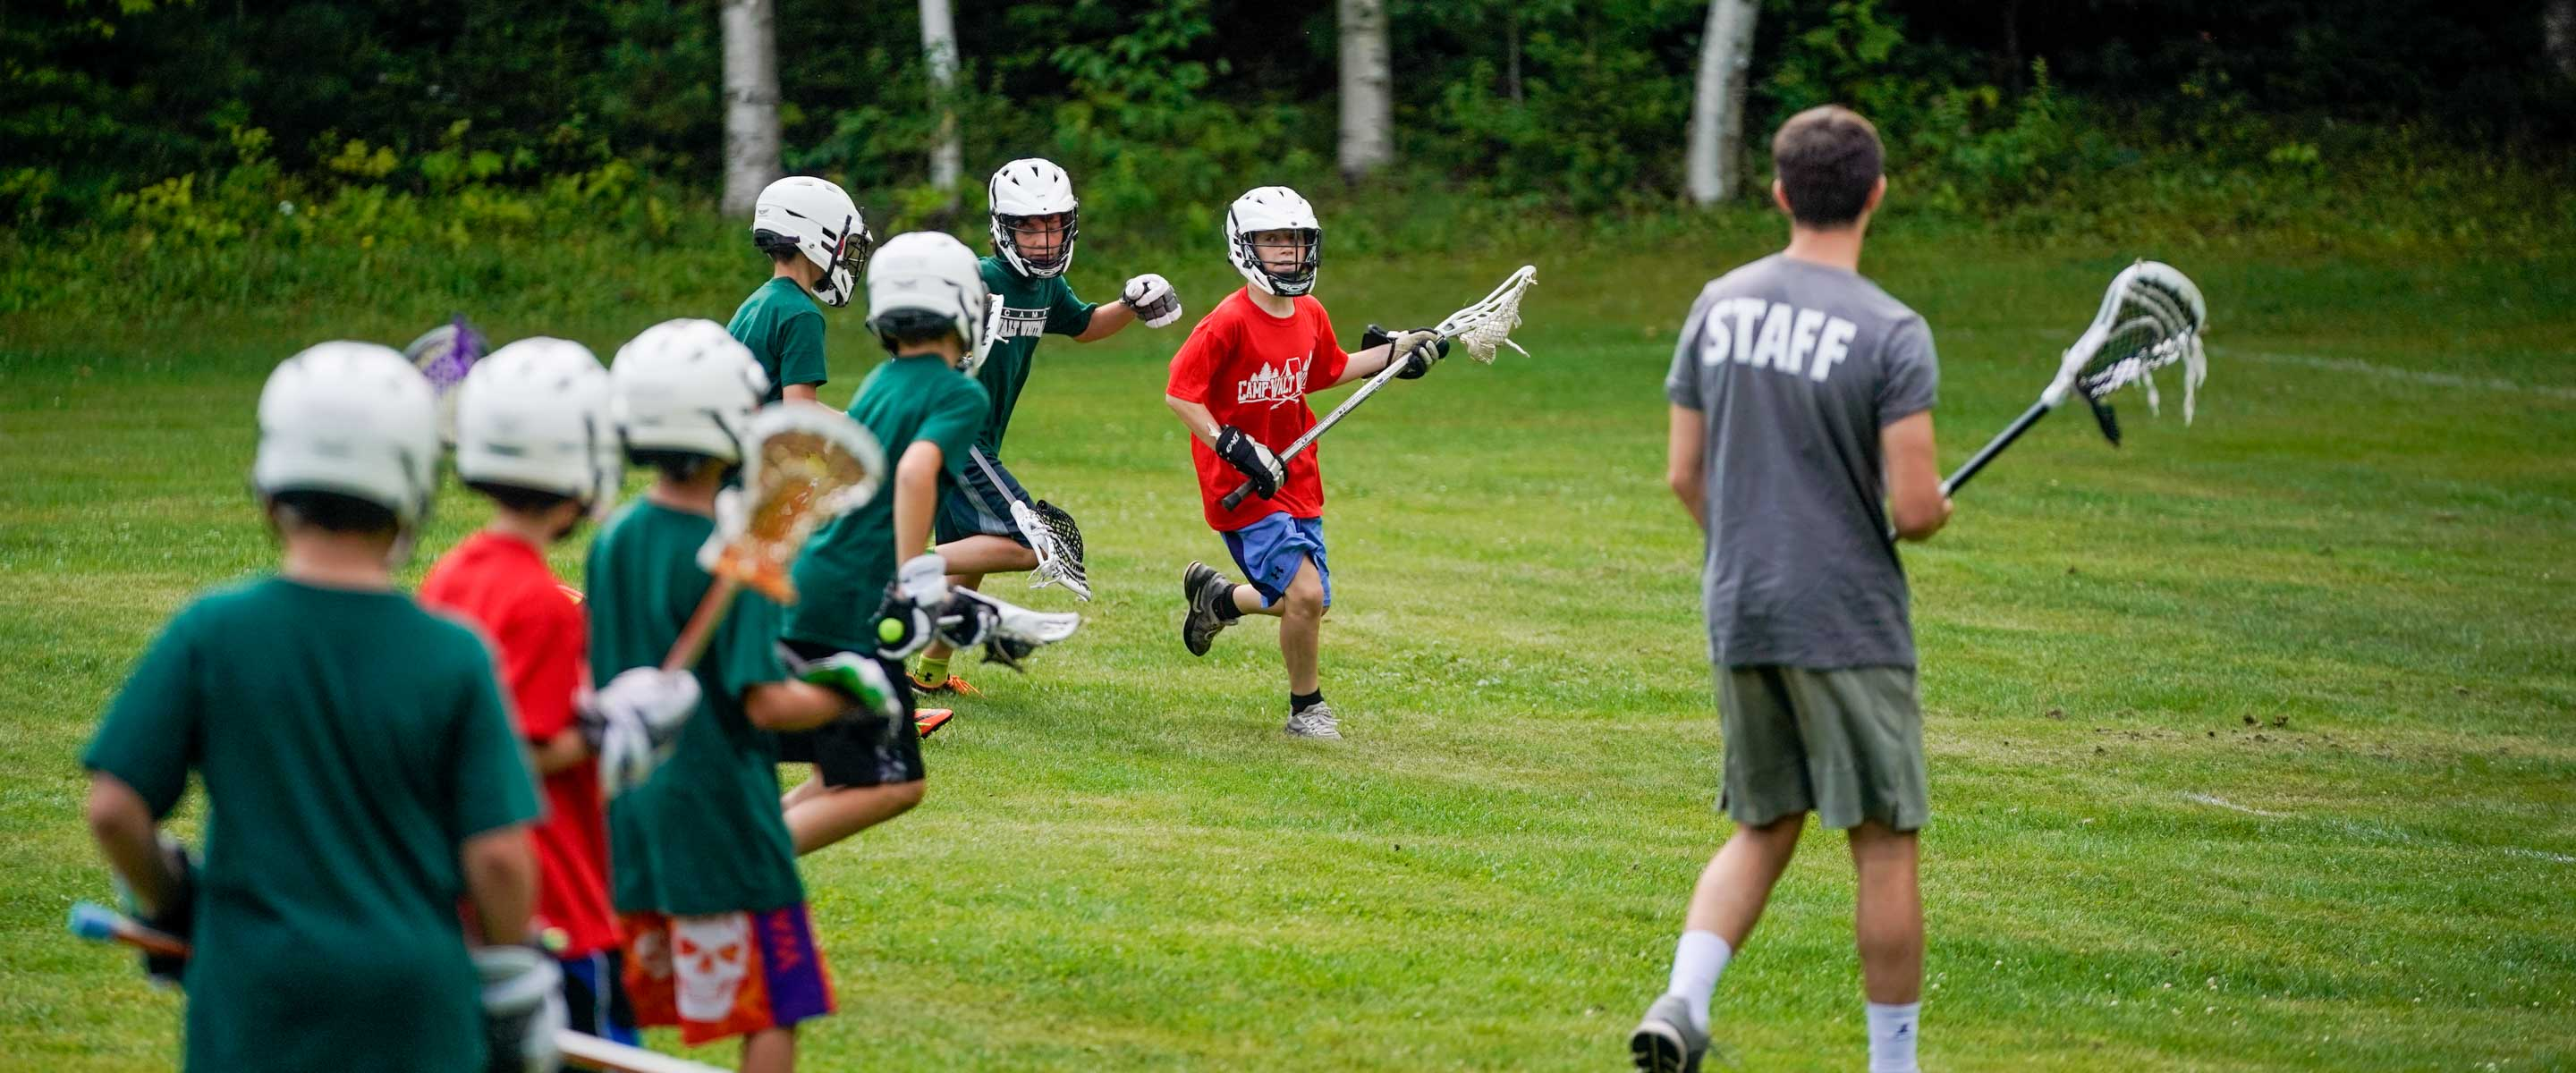 campers playing lacrosse